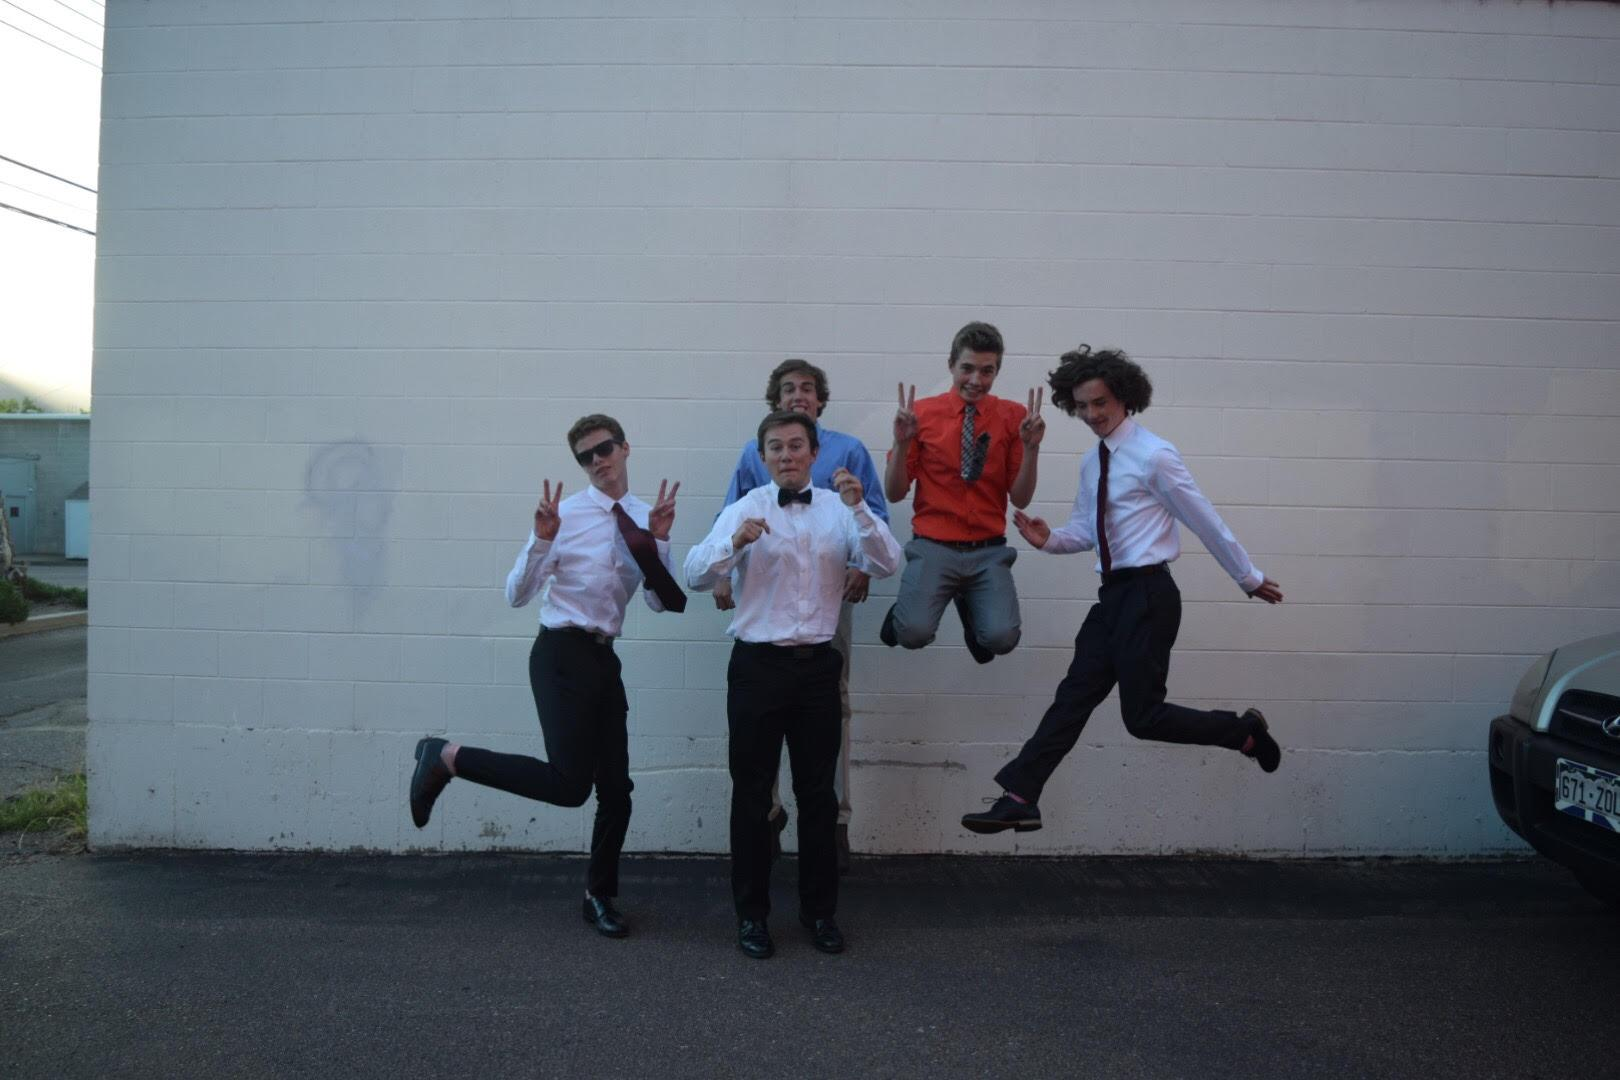 Owen Sawyer, JD Walton, Jack McConnel, Zach Reed, and Sam Choate jumping for homecoming